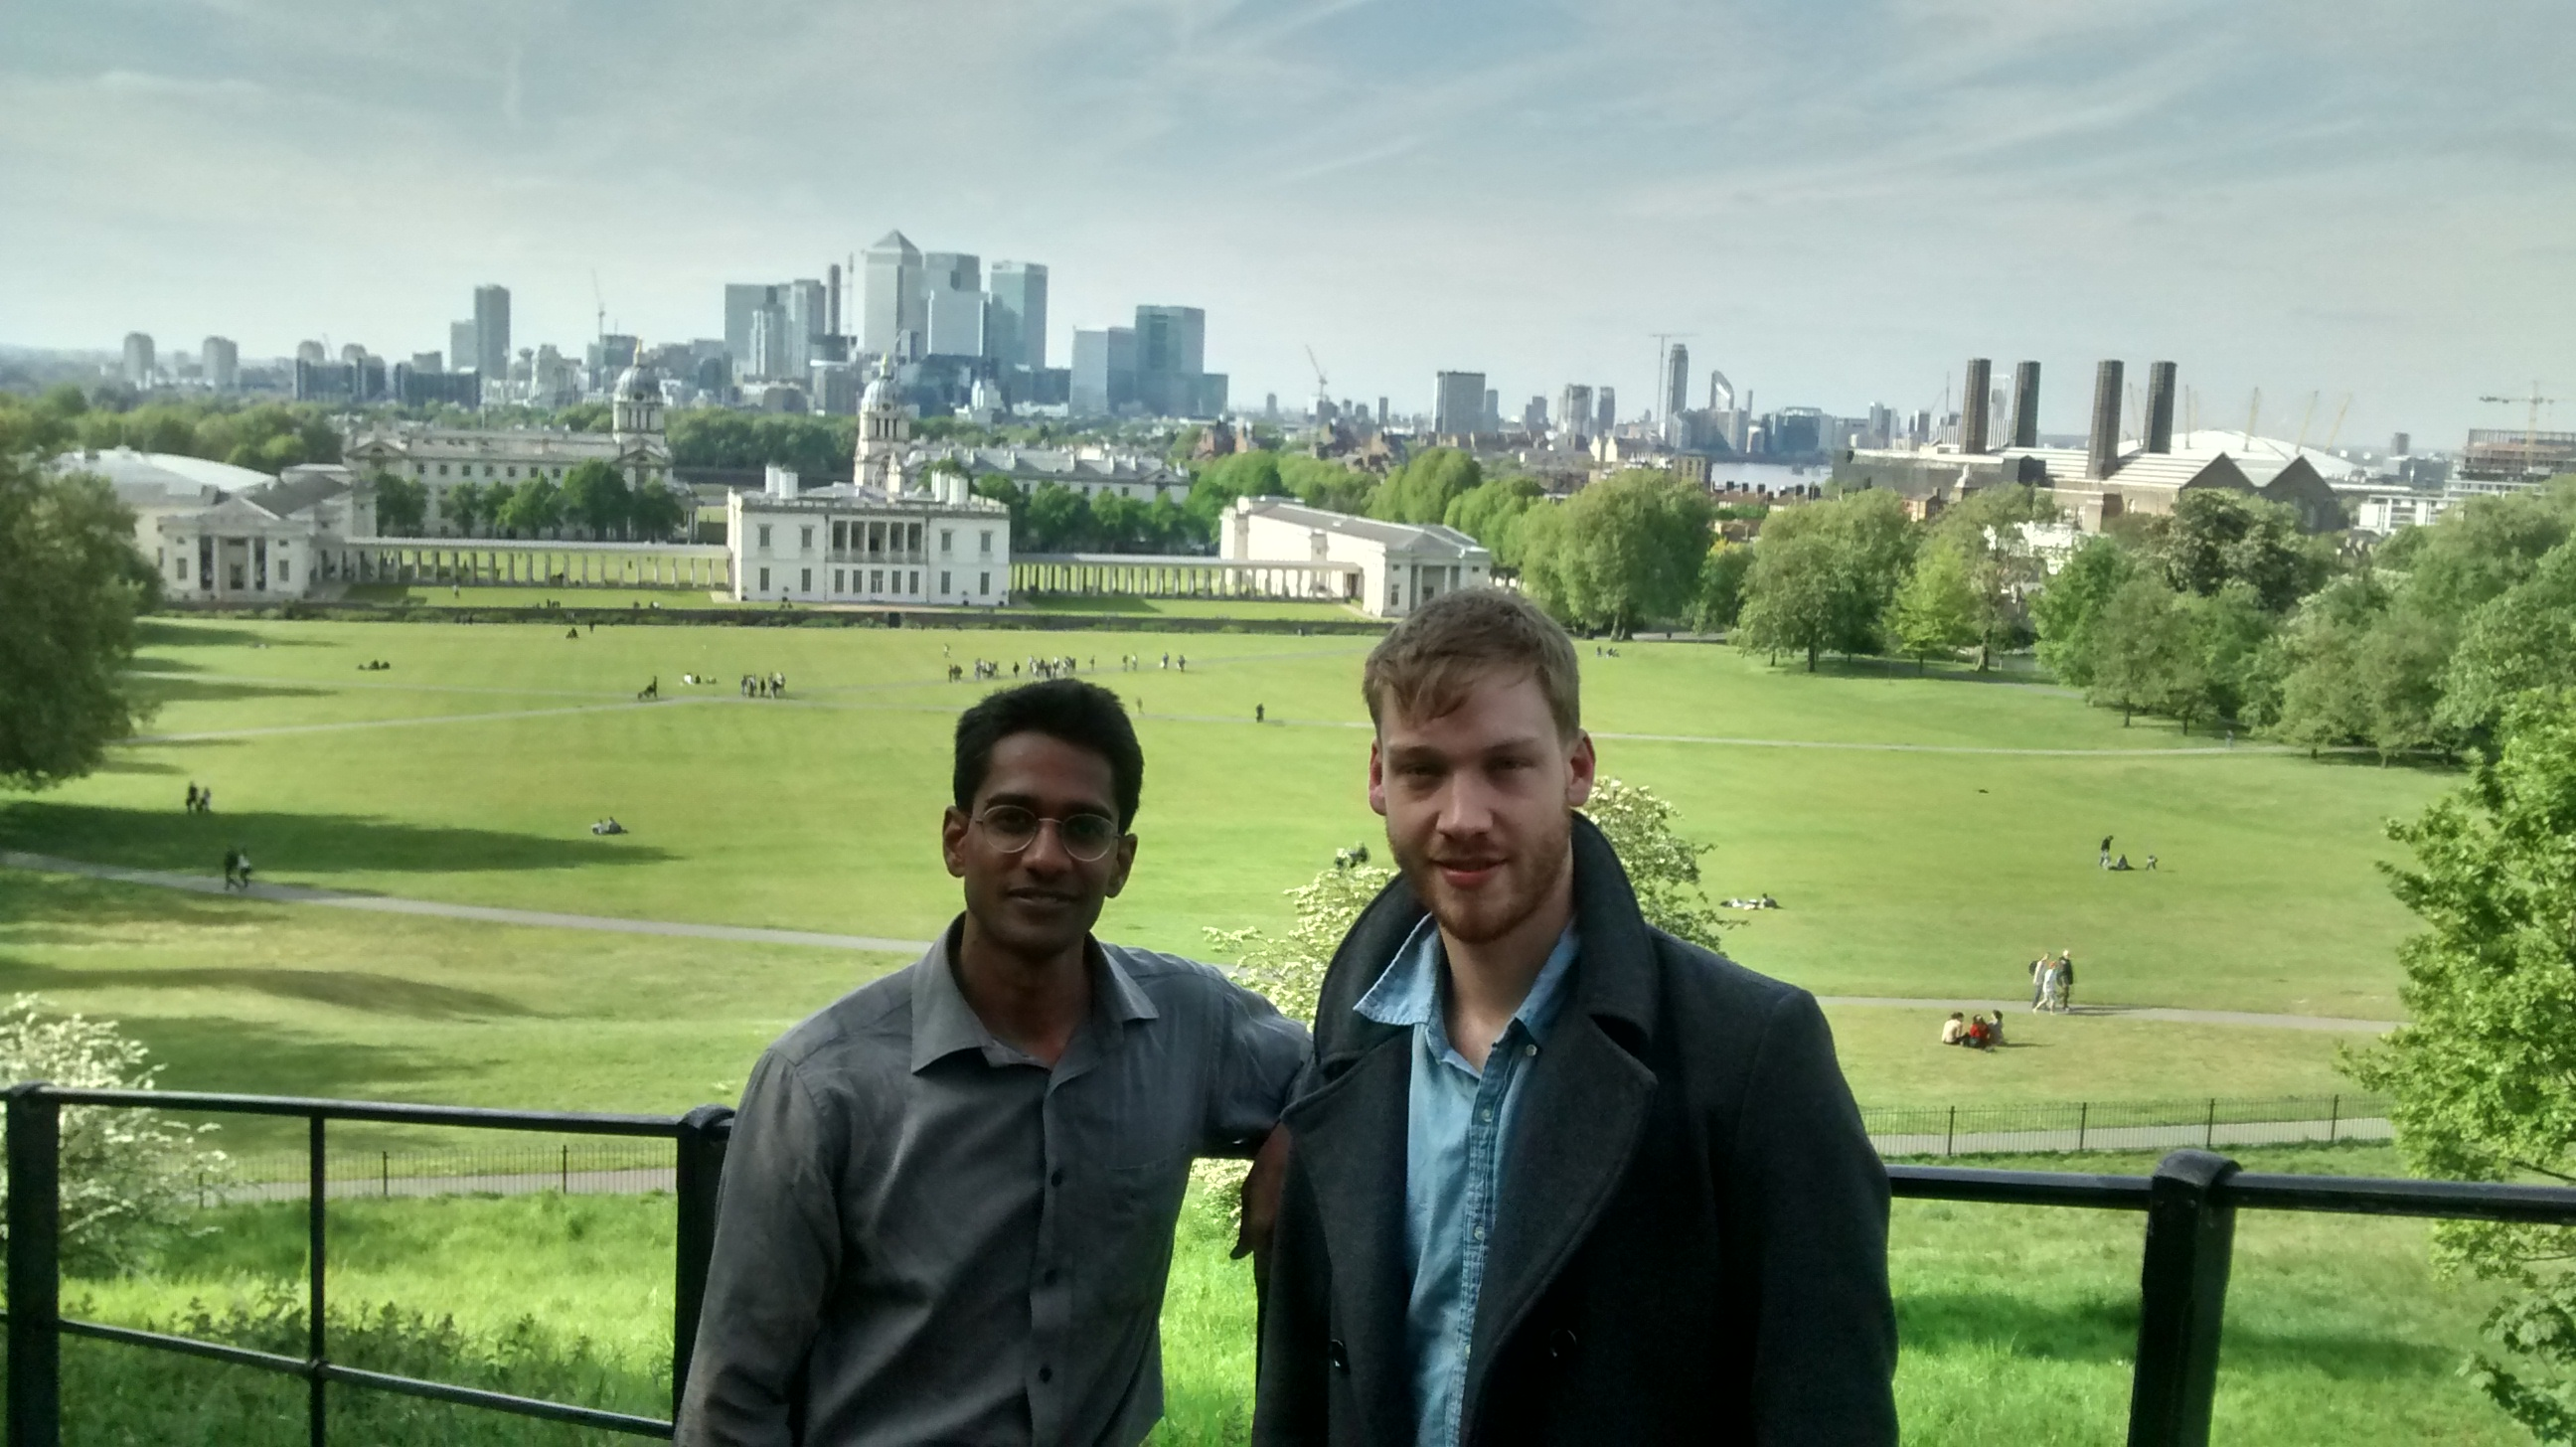 With London Skyline in the background